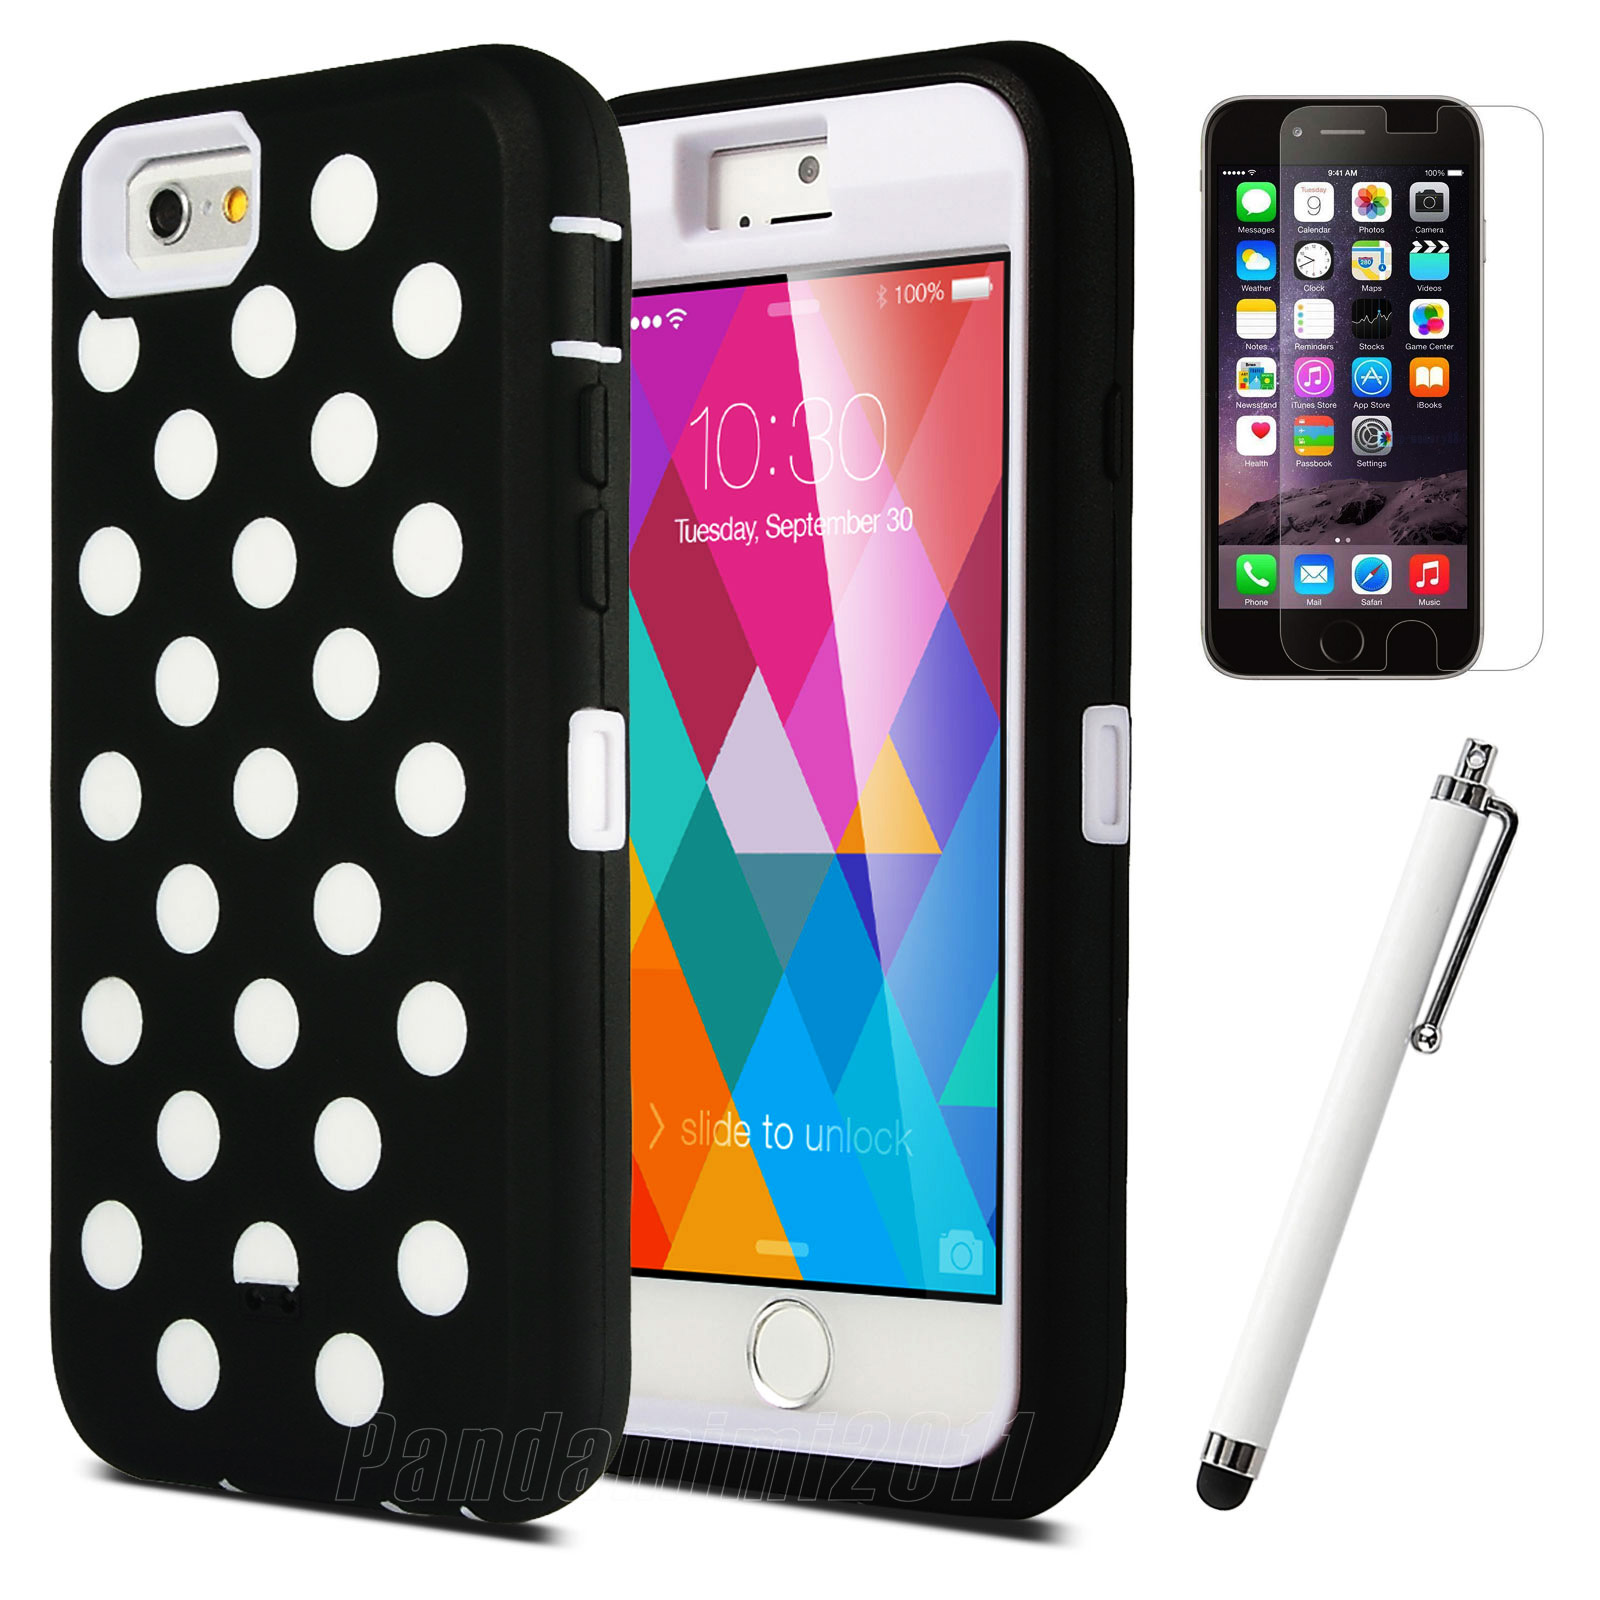 ULAK iPhone 6 6S Case, High Hybrid 3 Layer Polka Dot Print Protective Hard Case Cover for Apple iPhone 6 4.7/ Apple iPhone 6s 4.7 inch (Hard Plastic with Soft Silicone)